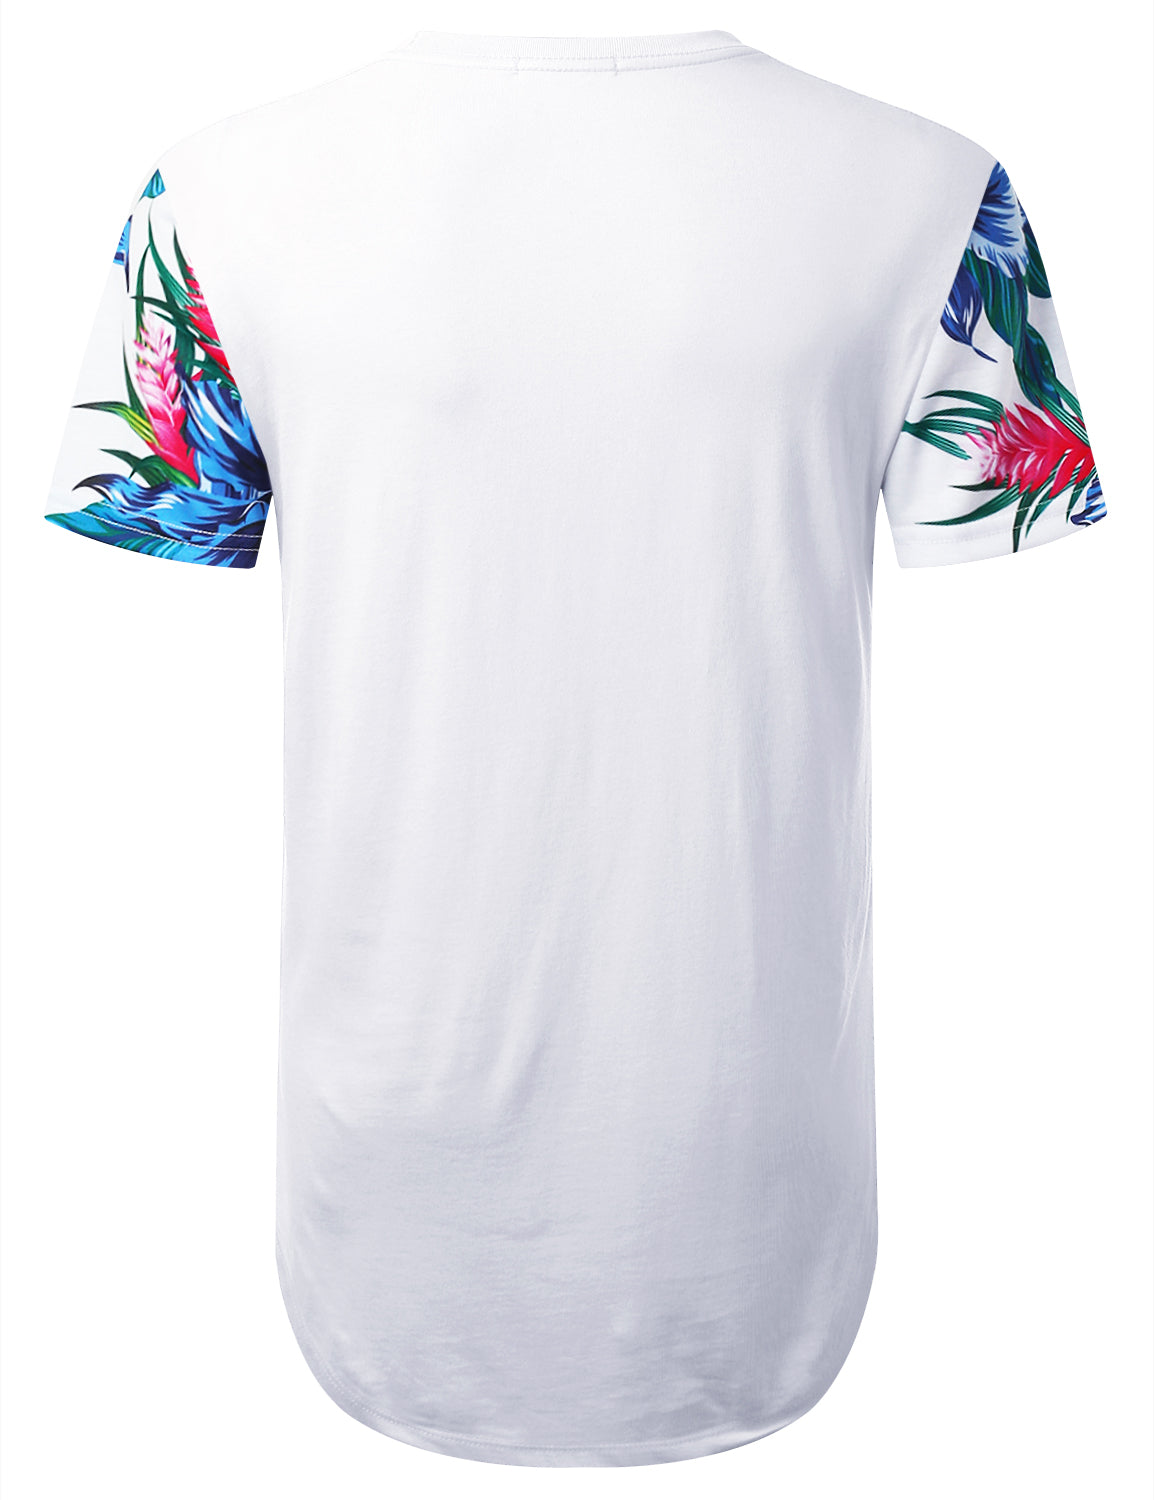 WHITE LA NY Blue Floral Longline T-shirt - URBANCREWS